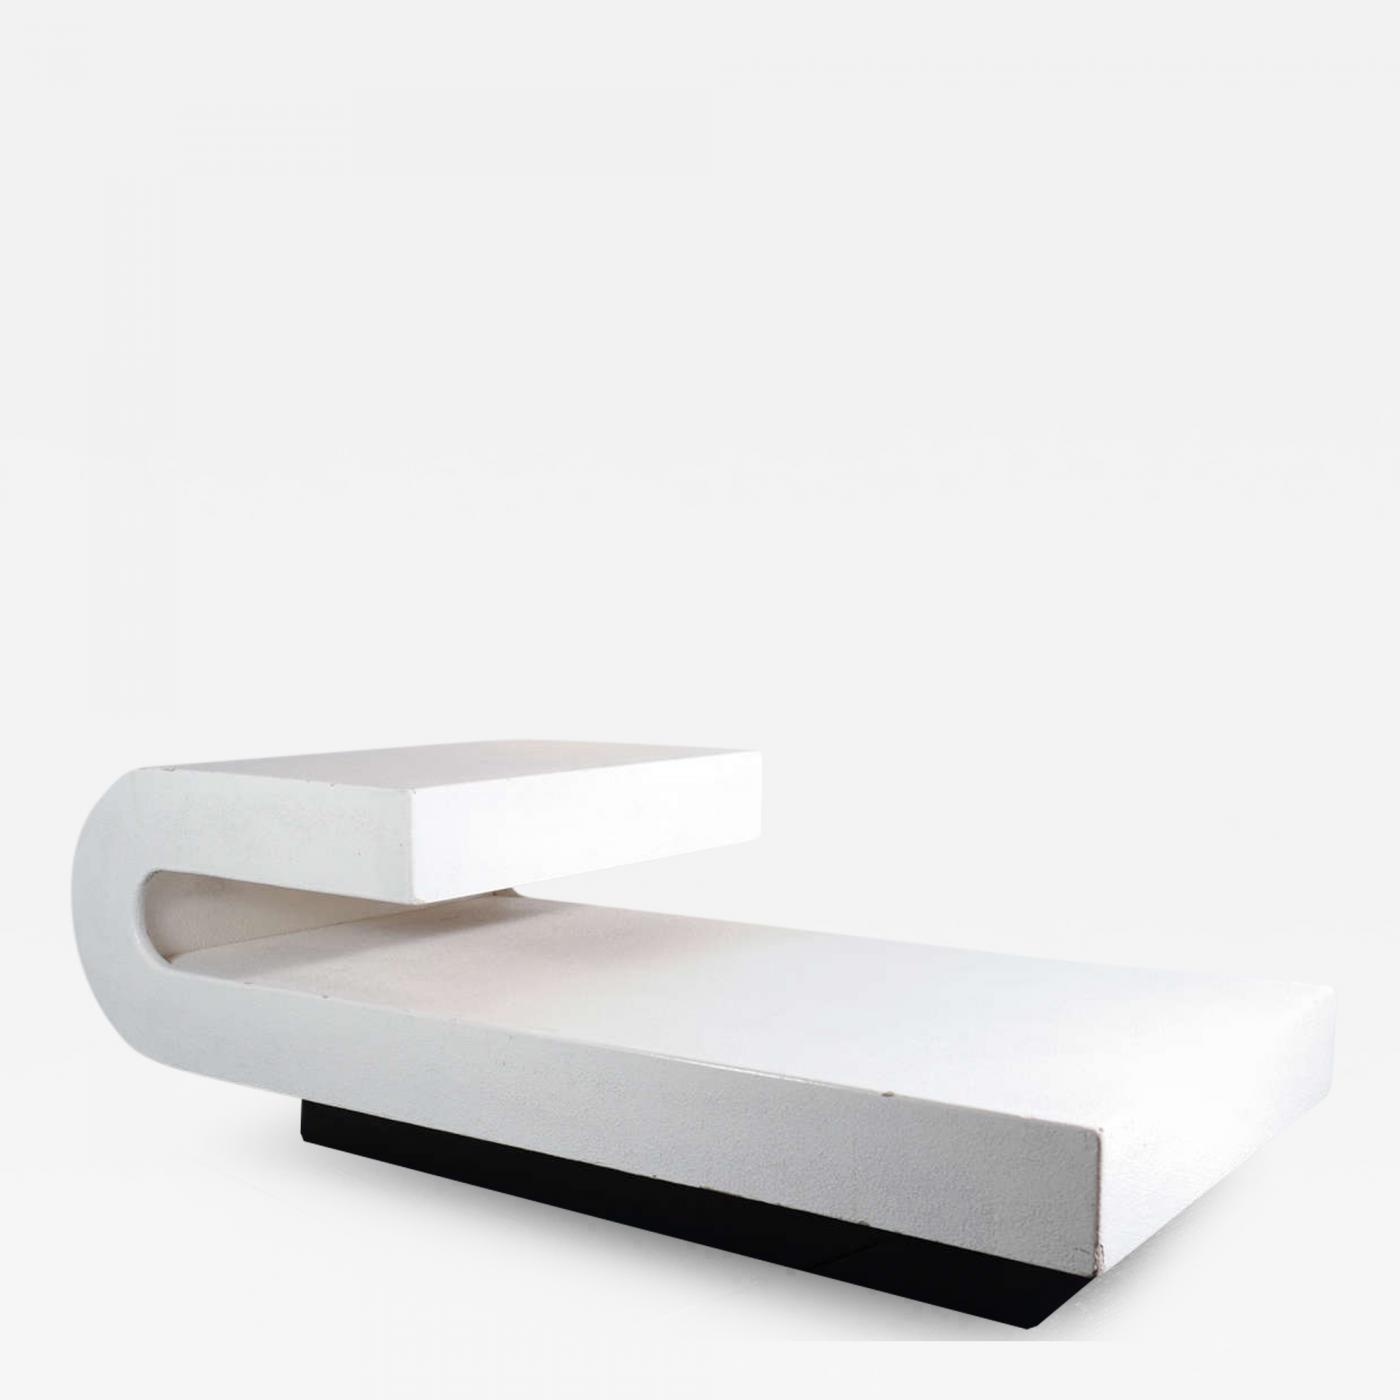 Pierre Cardin Very Rare Pierre Cardin Wave Coffee Table